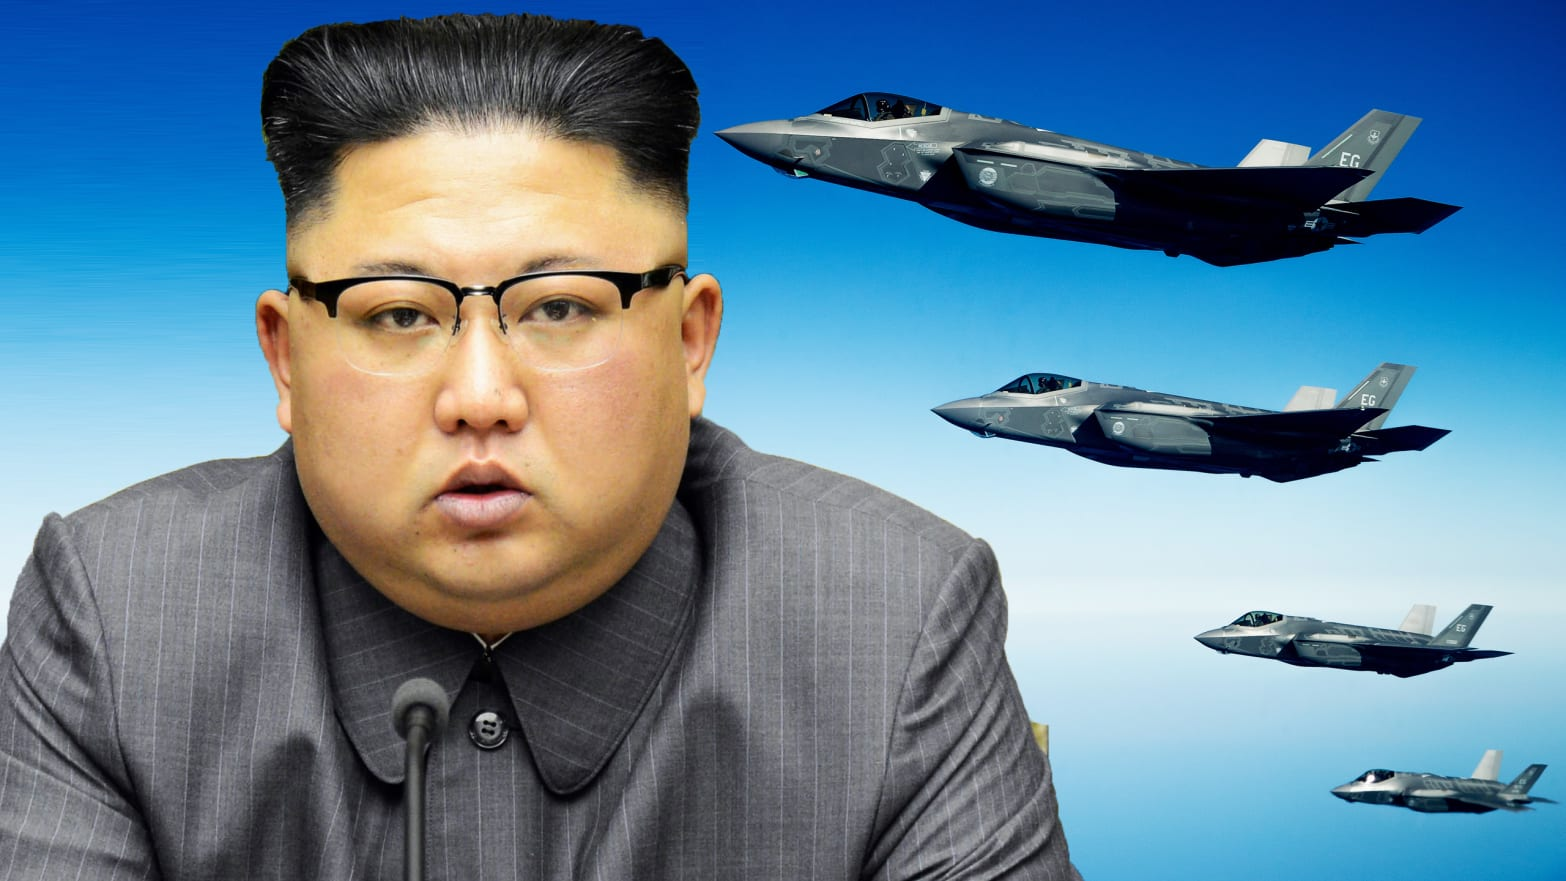 U.S. Sends Stealth Jets Into North Korean Crisis